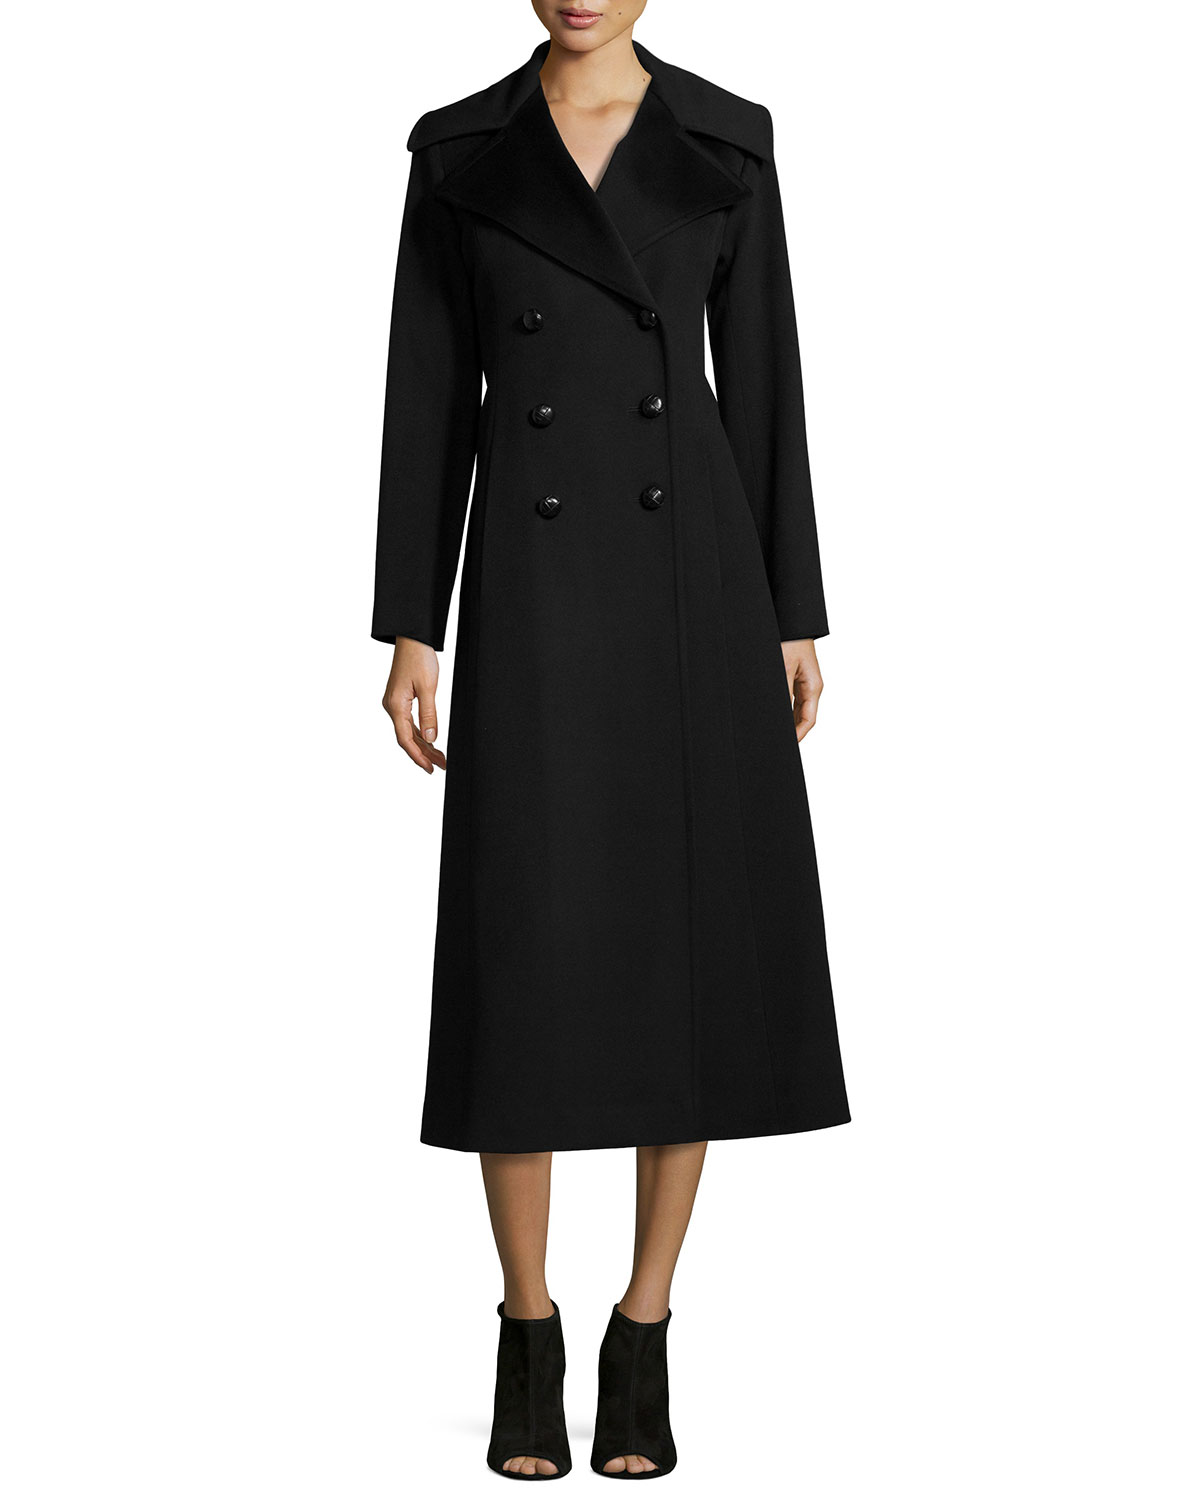 Double-Breasted Wool Maxi Coat, Size: 16, BLACK - Fleurette